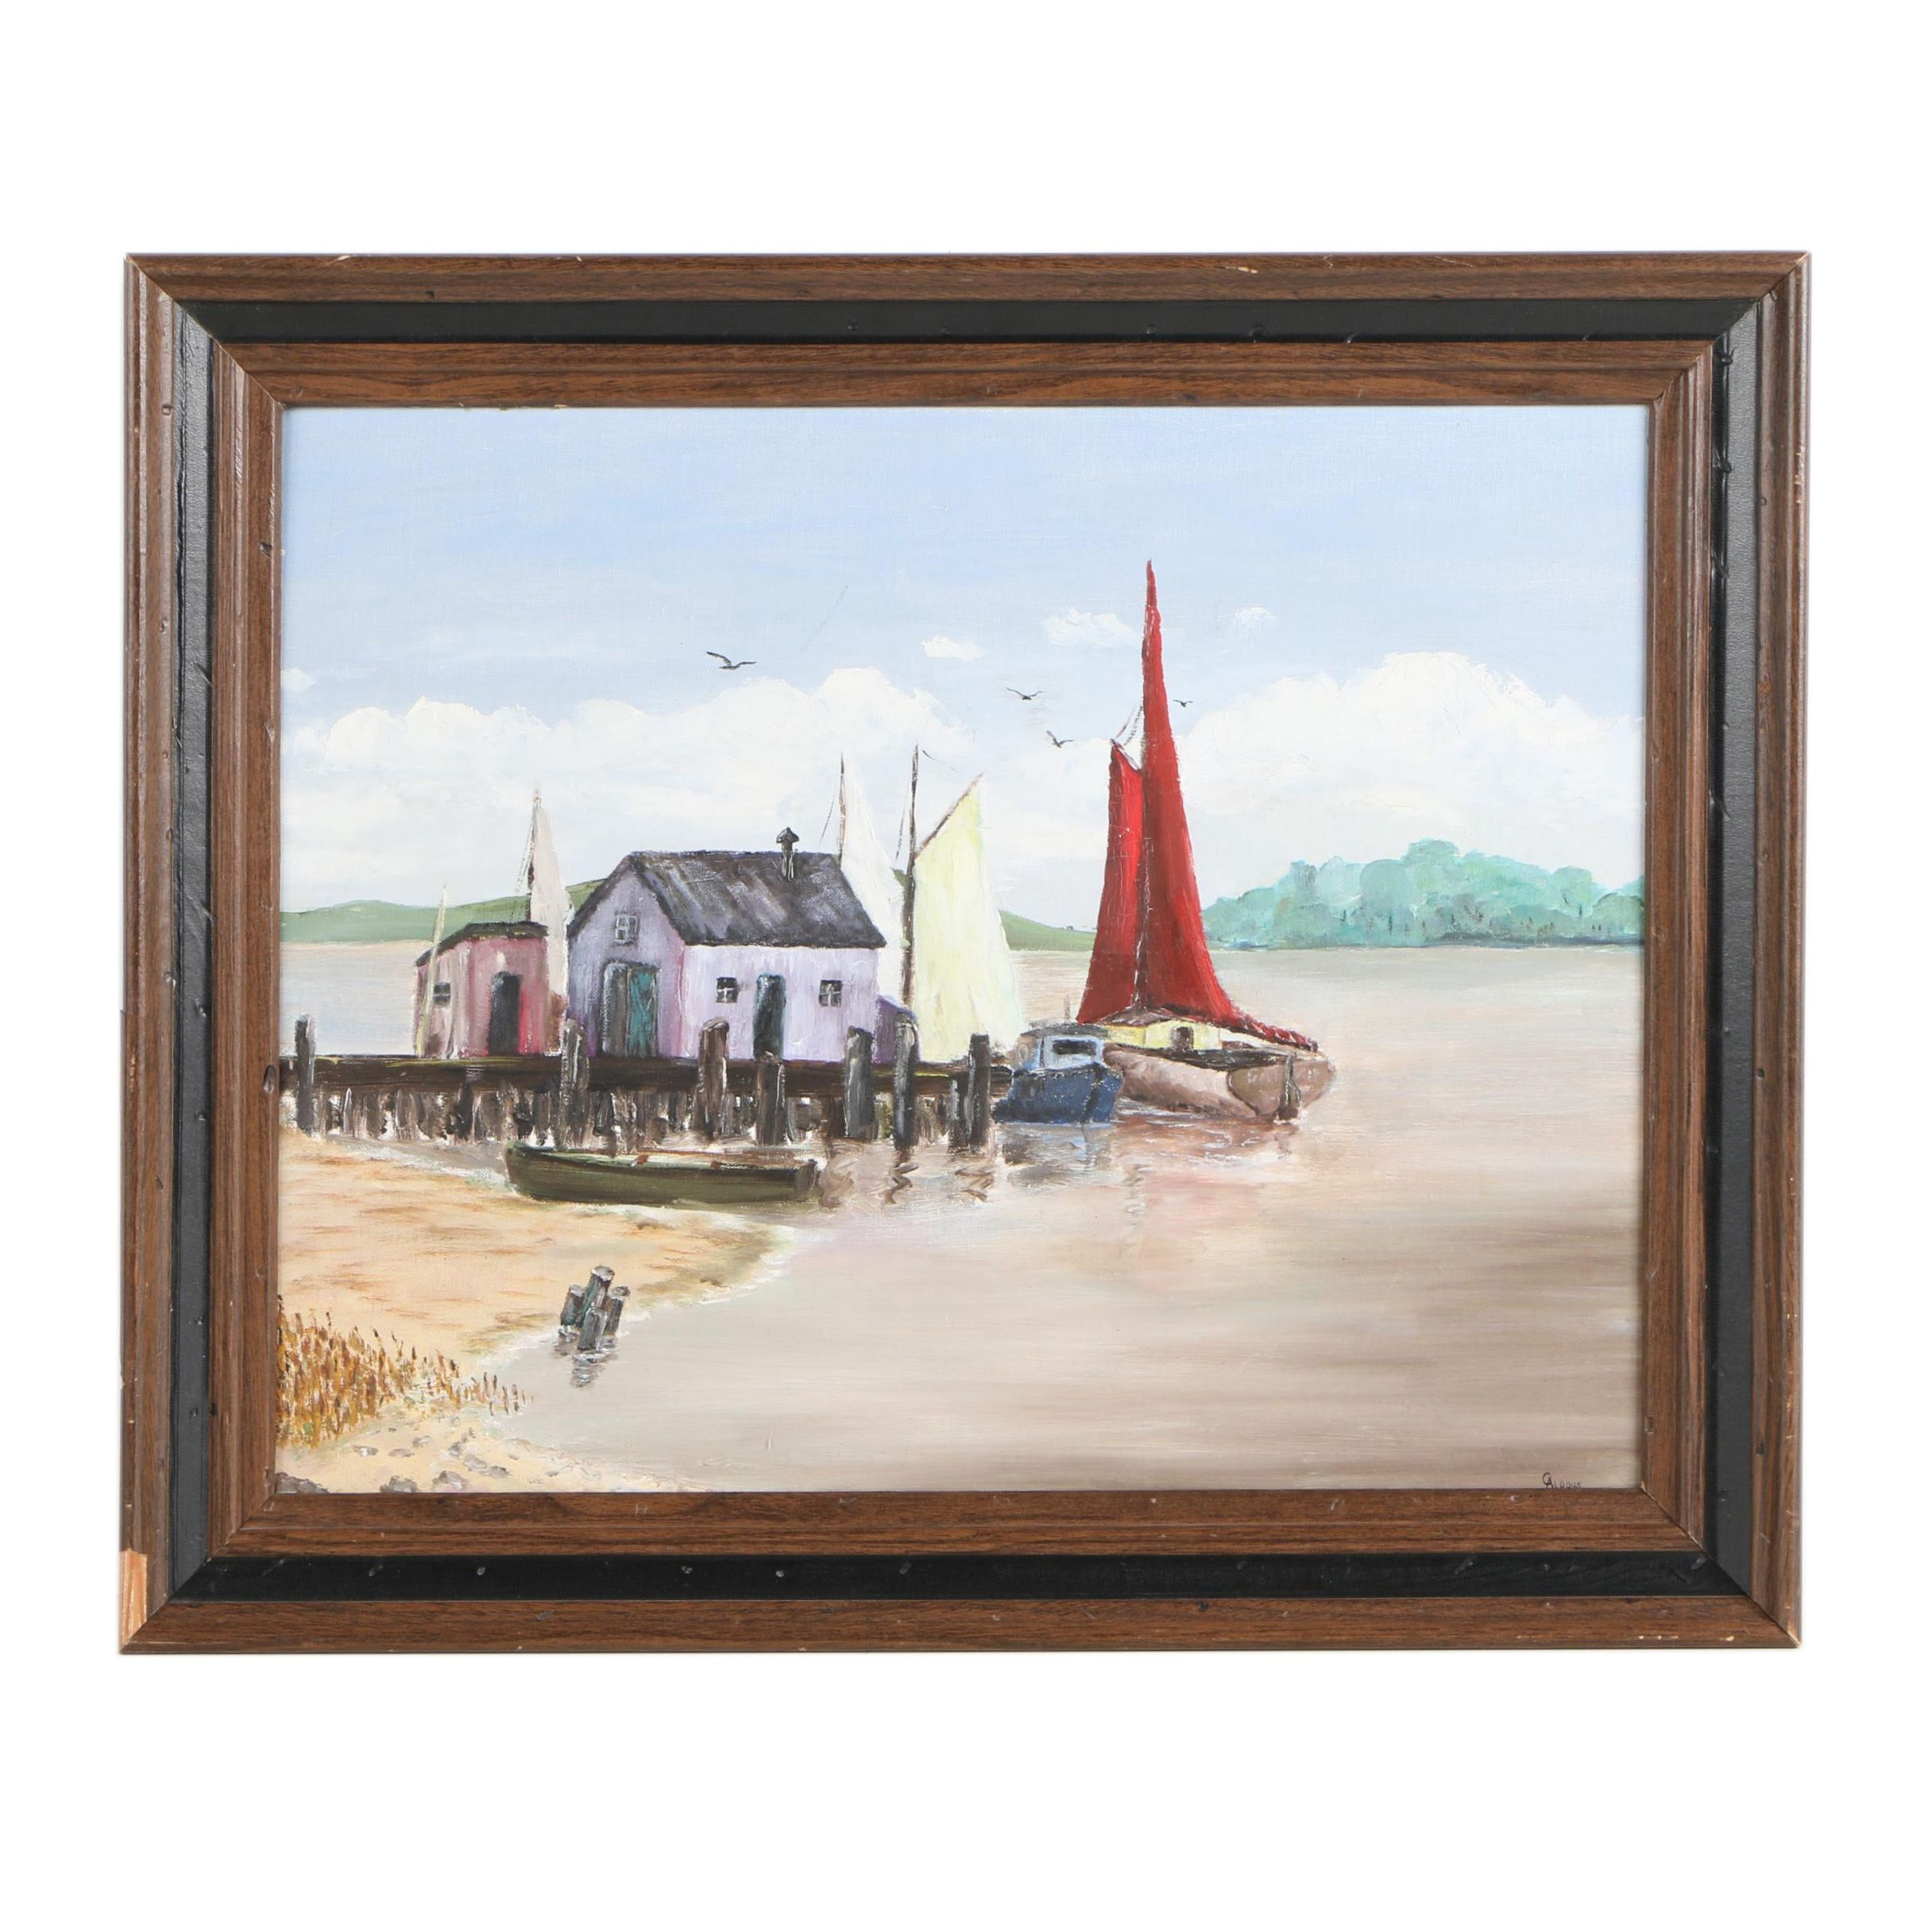 C. Aldous Oil Painting of Boats at Pier